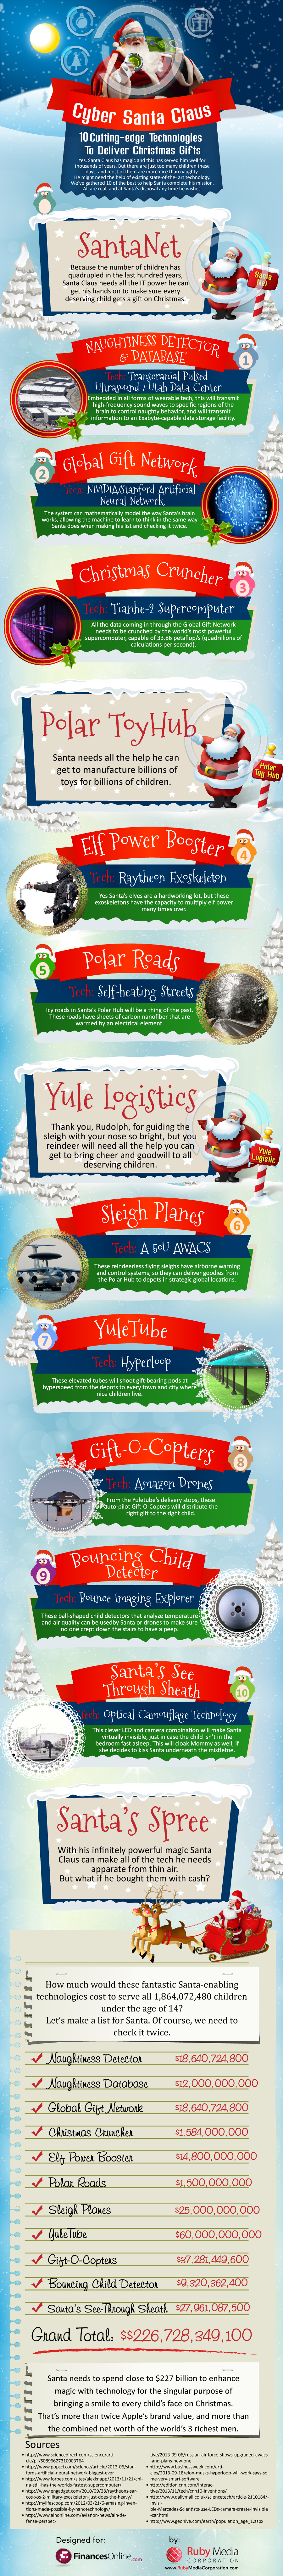 Cyber Santa Claus: Amazon Drones, Supercomputers and Other Cutting-edge Technologies Santa Can Use To Deliver Christmas Gifts